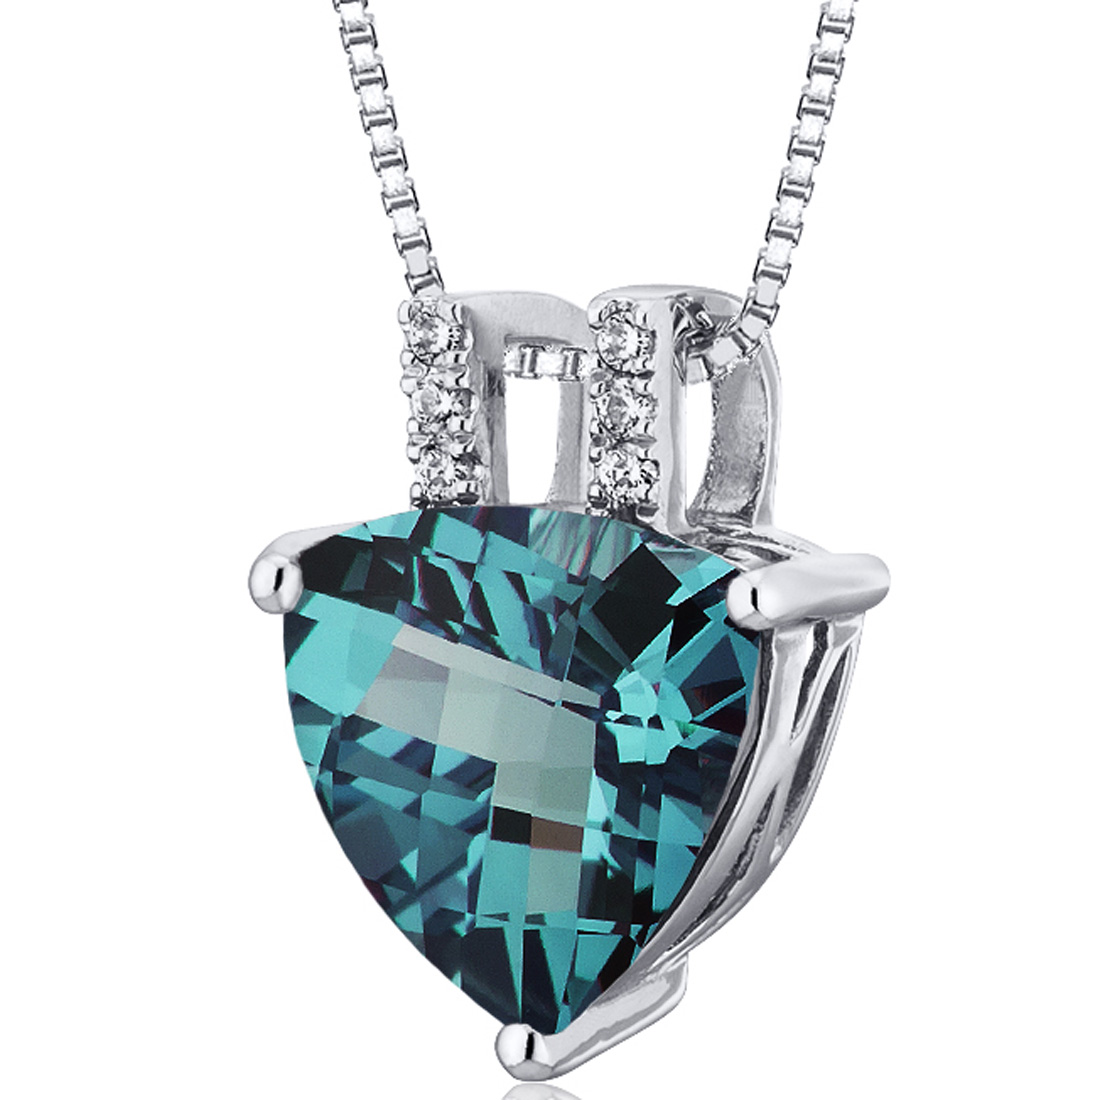 Peora 3.25 Carat T.G.W. Trillion Cut Created Alexandrite Rhodium over Sterling Silver Pendant, 18""